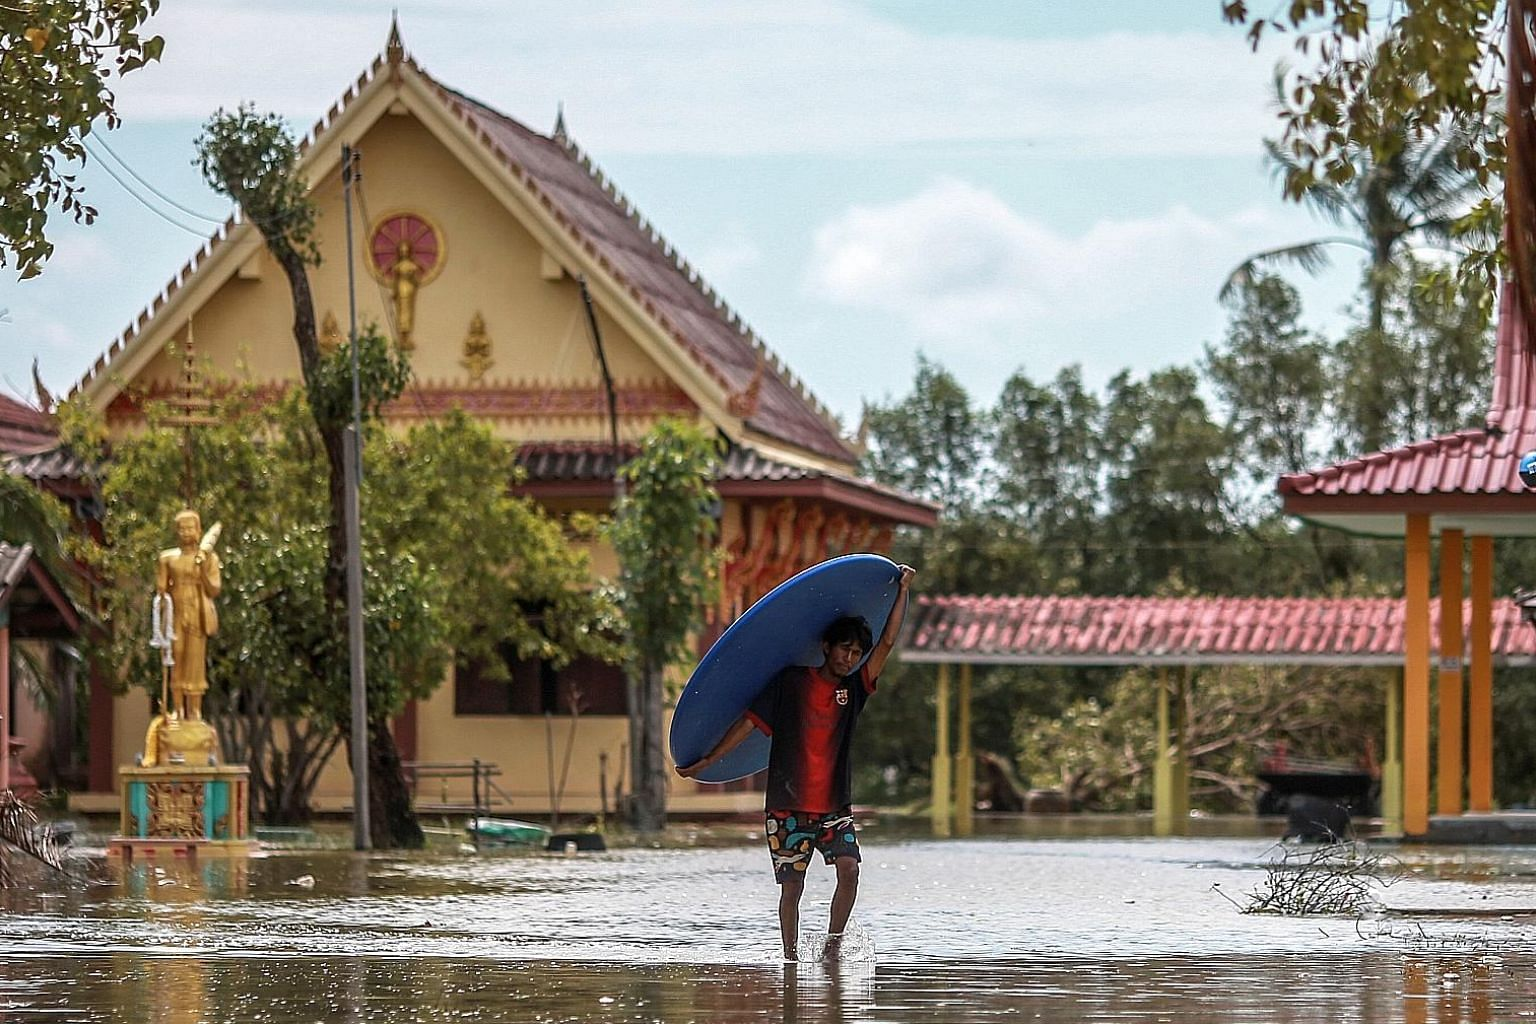 Evacuees returned home to find their belongings soaked by flash floods. Pabuk made landfall last Friday afternoon in Nakhon Si Thammarat's Pak Phanang district by the Gulf of Thailand, with 75kmh winds tearing off rooftops.